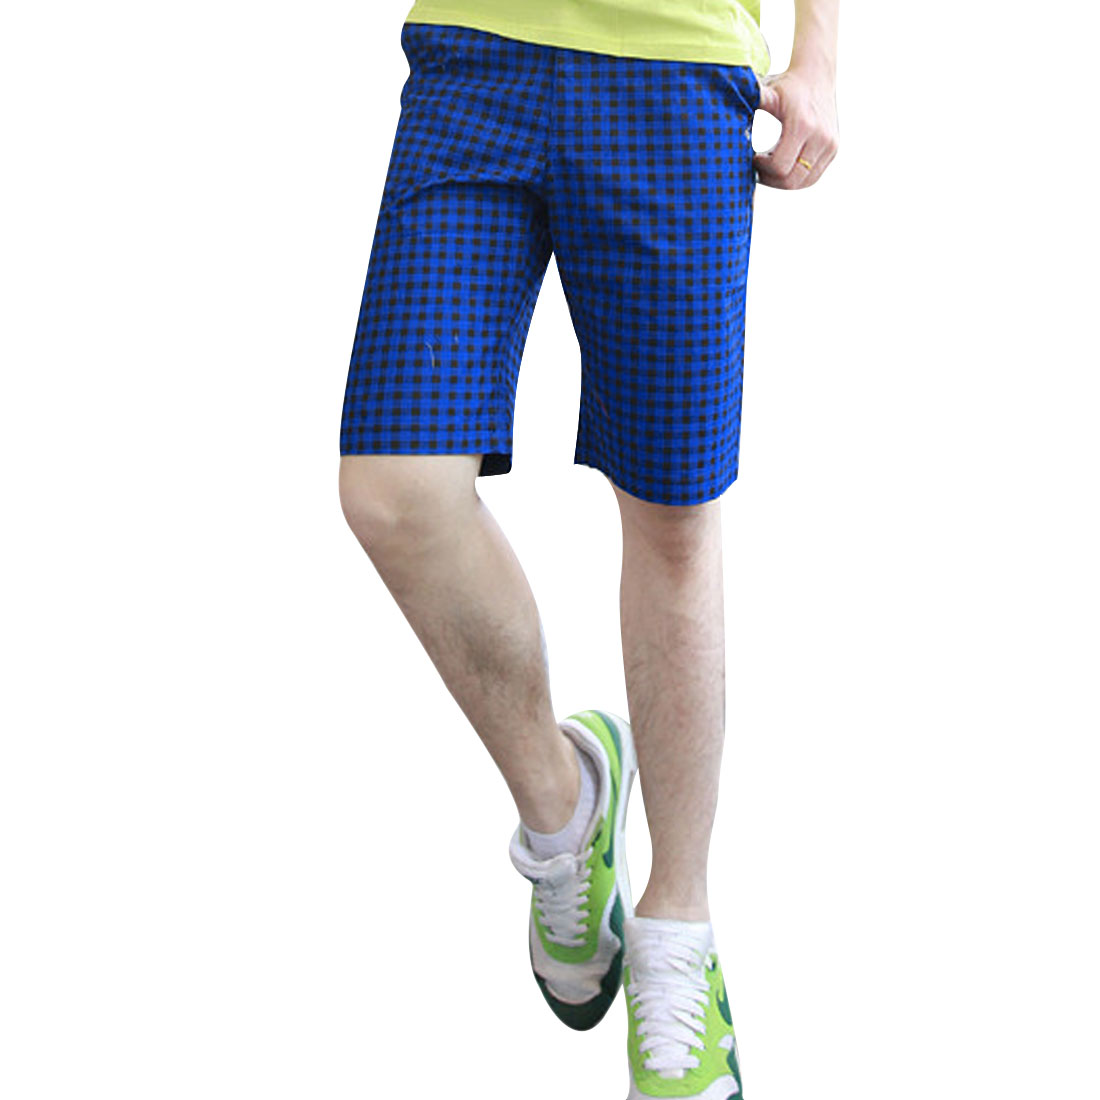 Men Stretchy Buttoned Hip Pockets Zipper Fly Short Pants Royal Blue W33